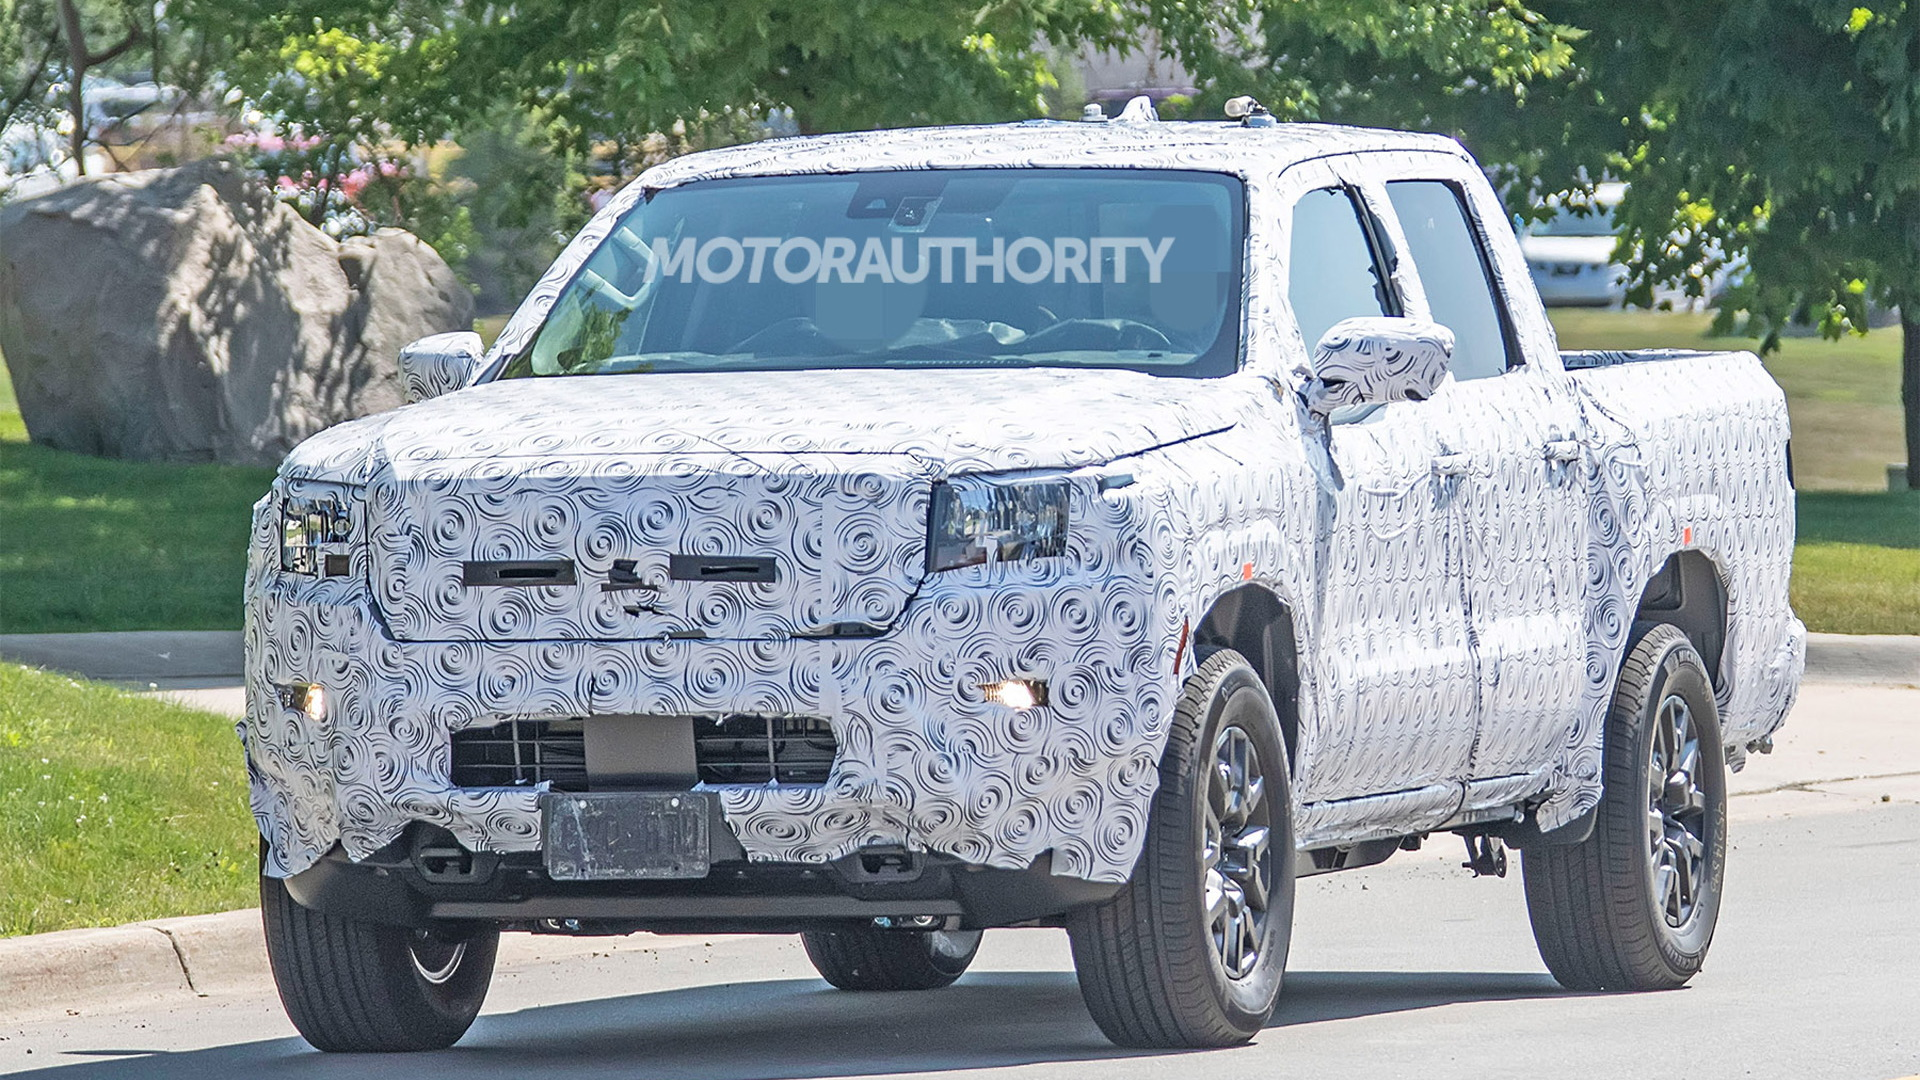 2021 Nissan Frontier spy shots - Photo credit: S. Baldauf/SB-Medien